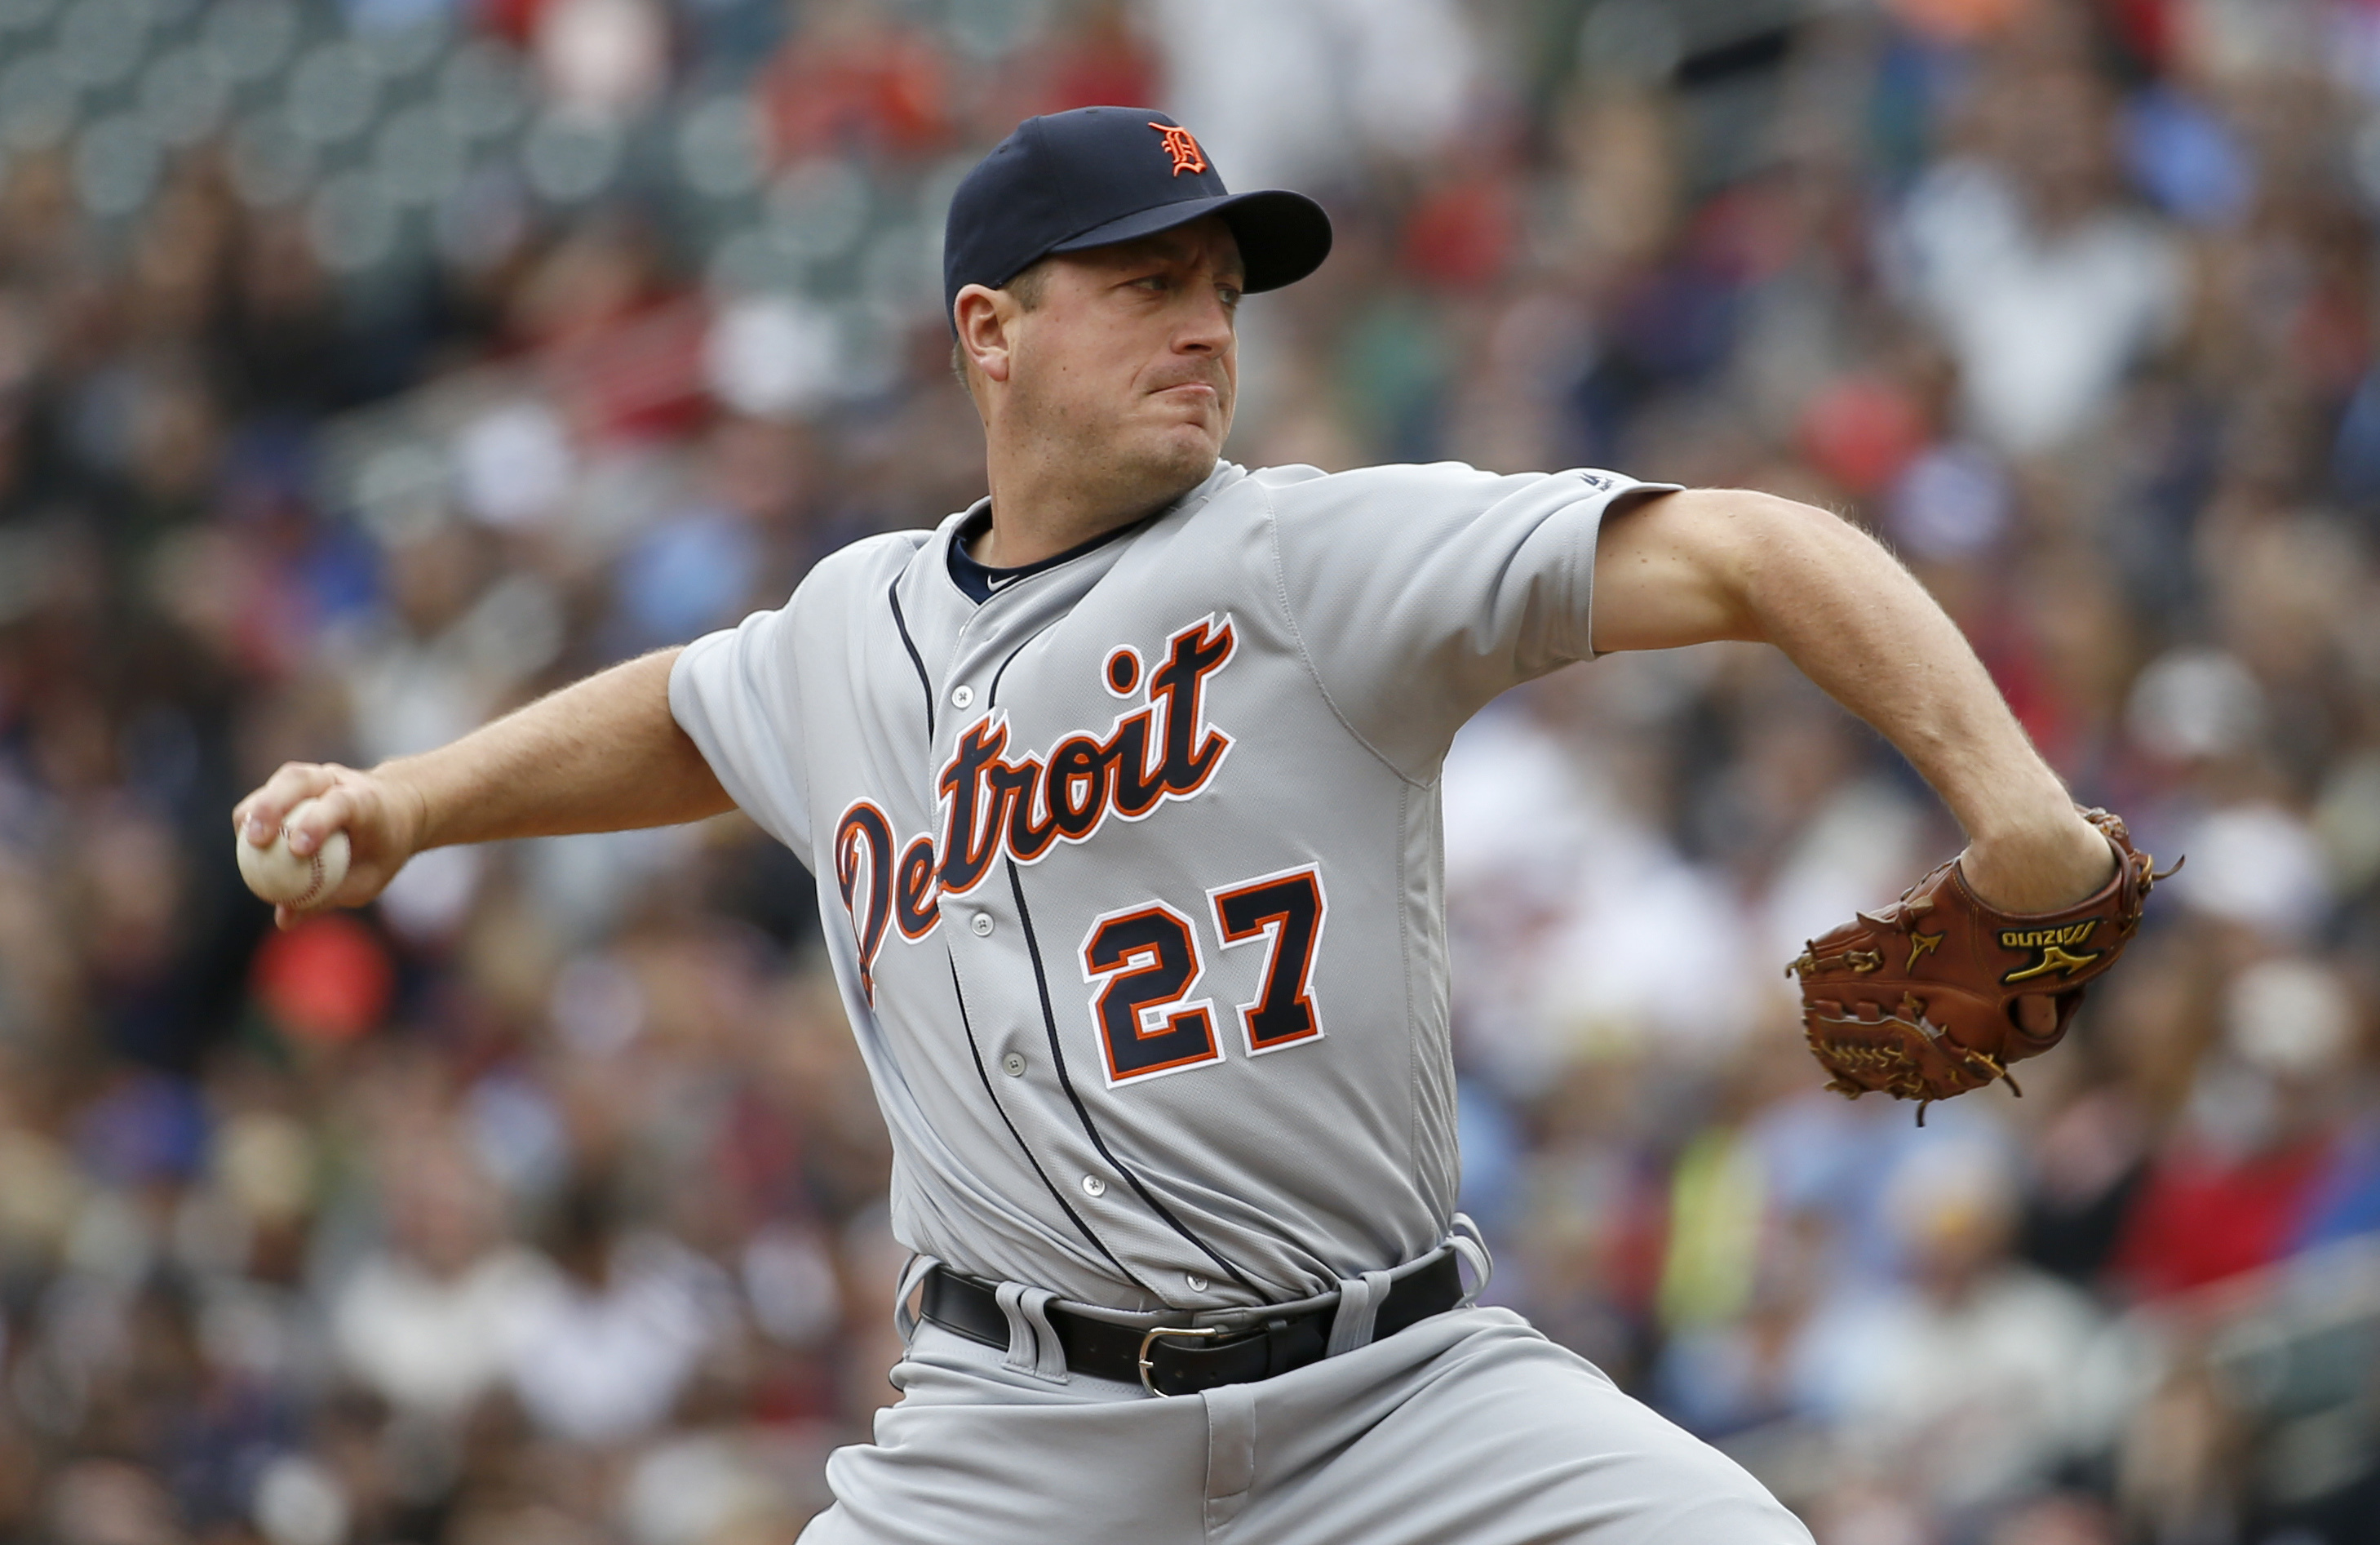 Detroit Tigers starting pitcher Jordan Zimmermann (27) delivers to the Minnesota Twins during the first inning of a baseball game in Minneapolis, Saturday, April 30, 2016. (AP Photo/Ann Heisenfelt)